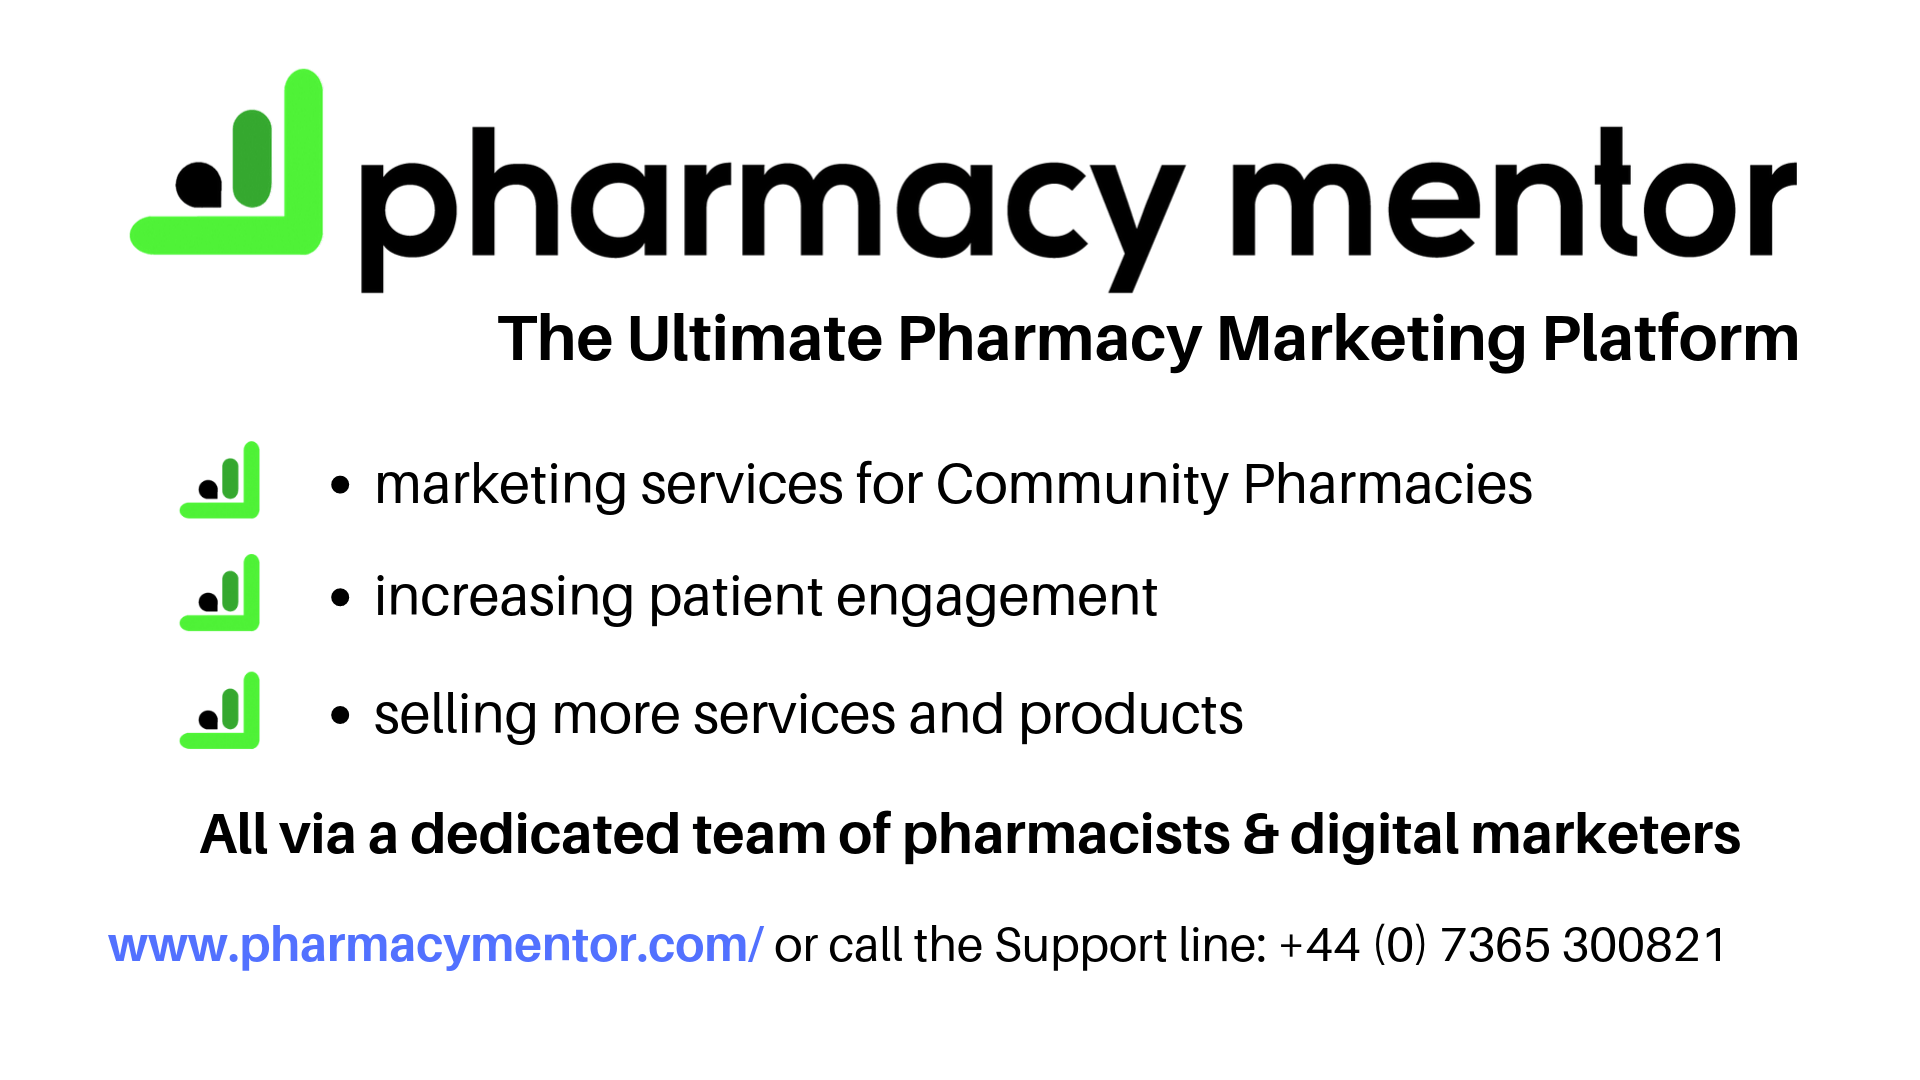 Pharmacy Mentor partnered with Lipotrim to offer professional pharmacy marketing